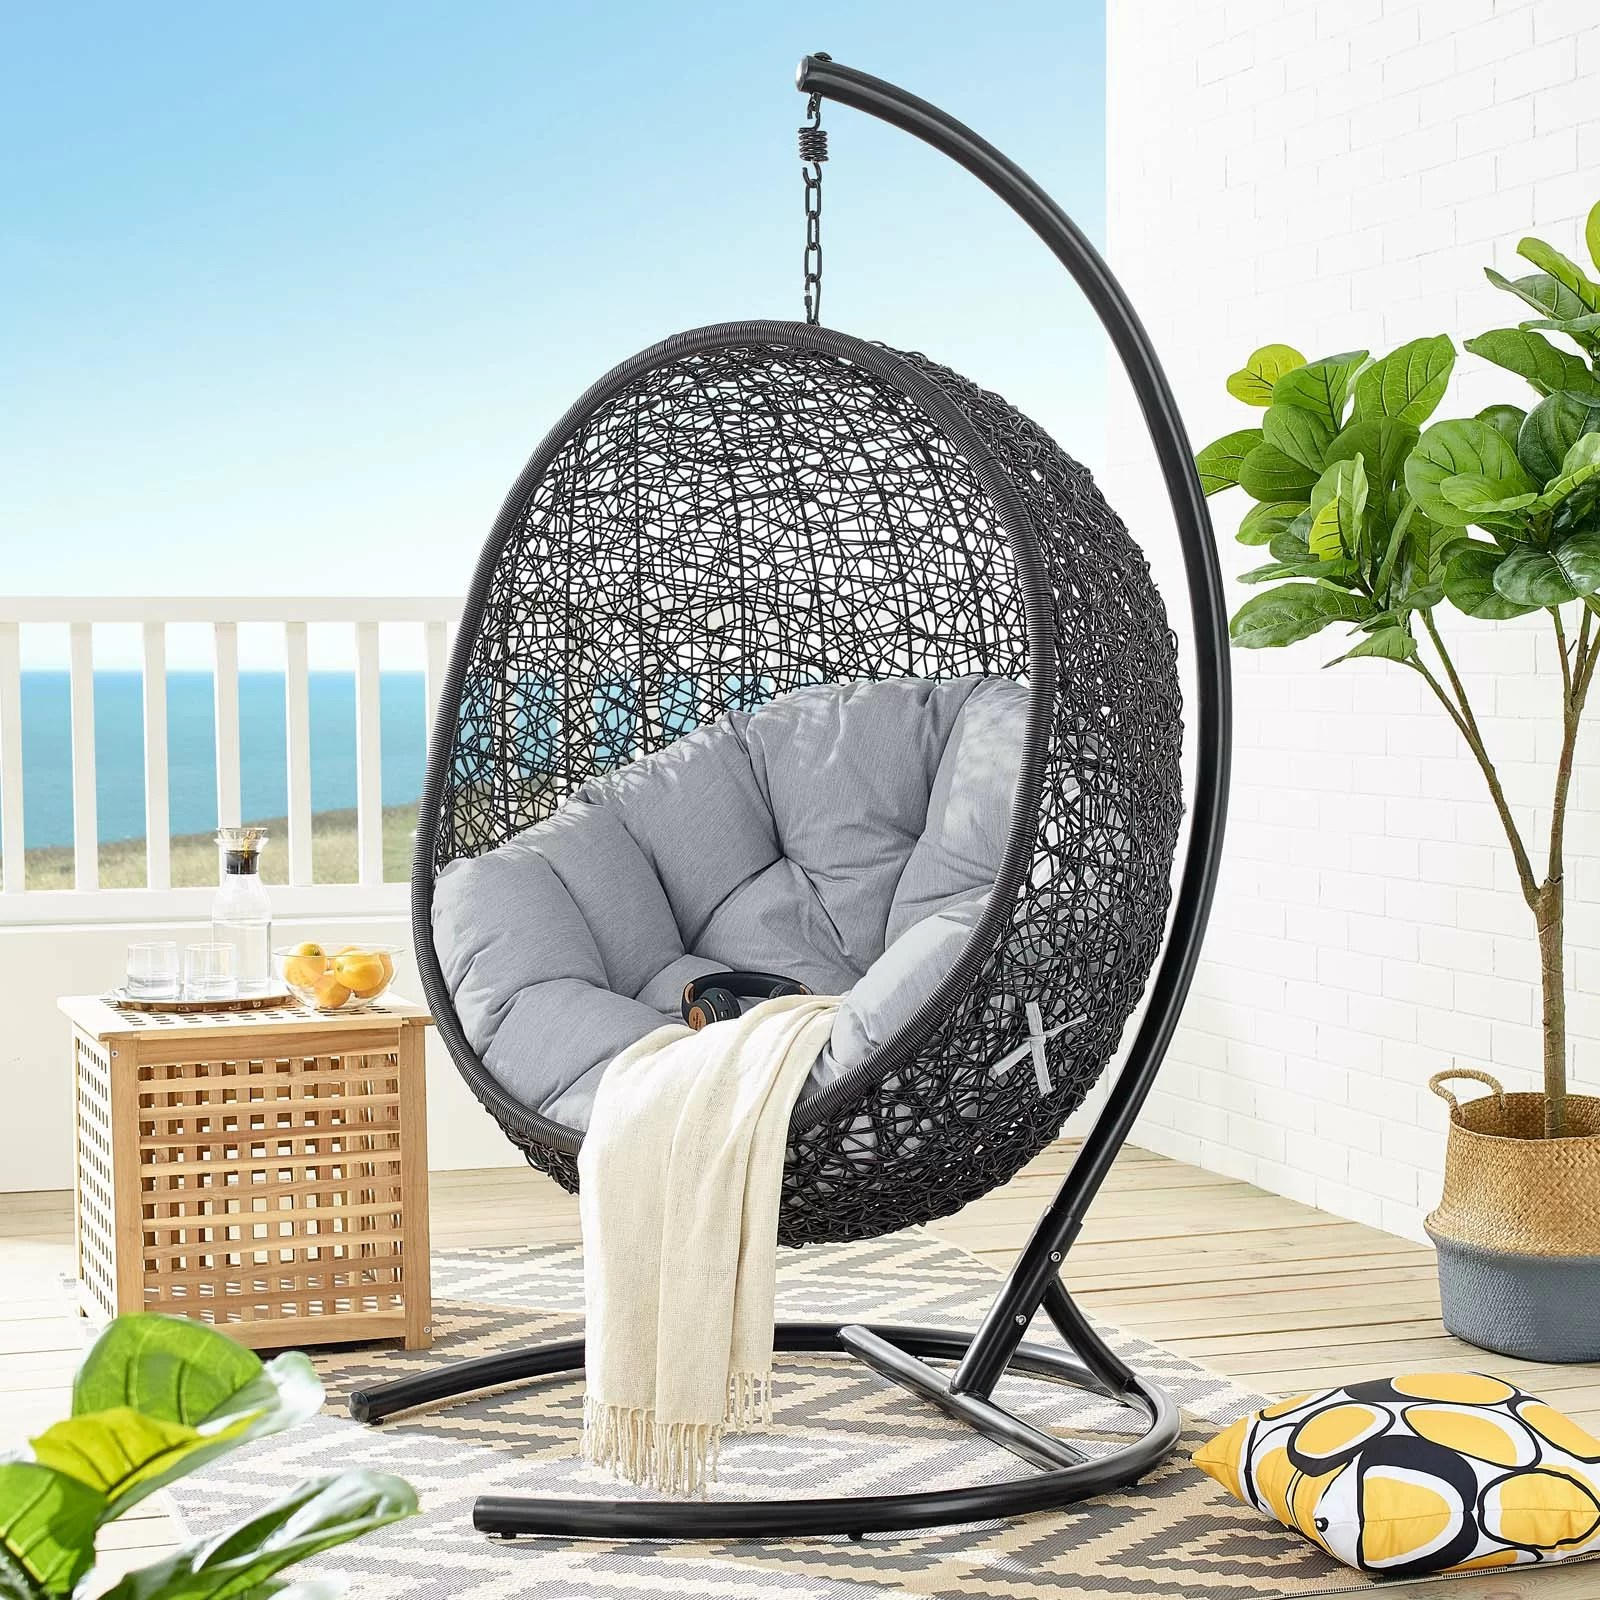 wisser sunbrella outdoor patio swing chair with stand